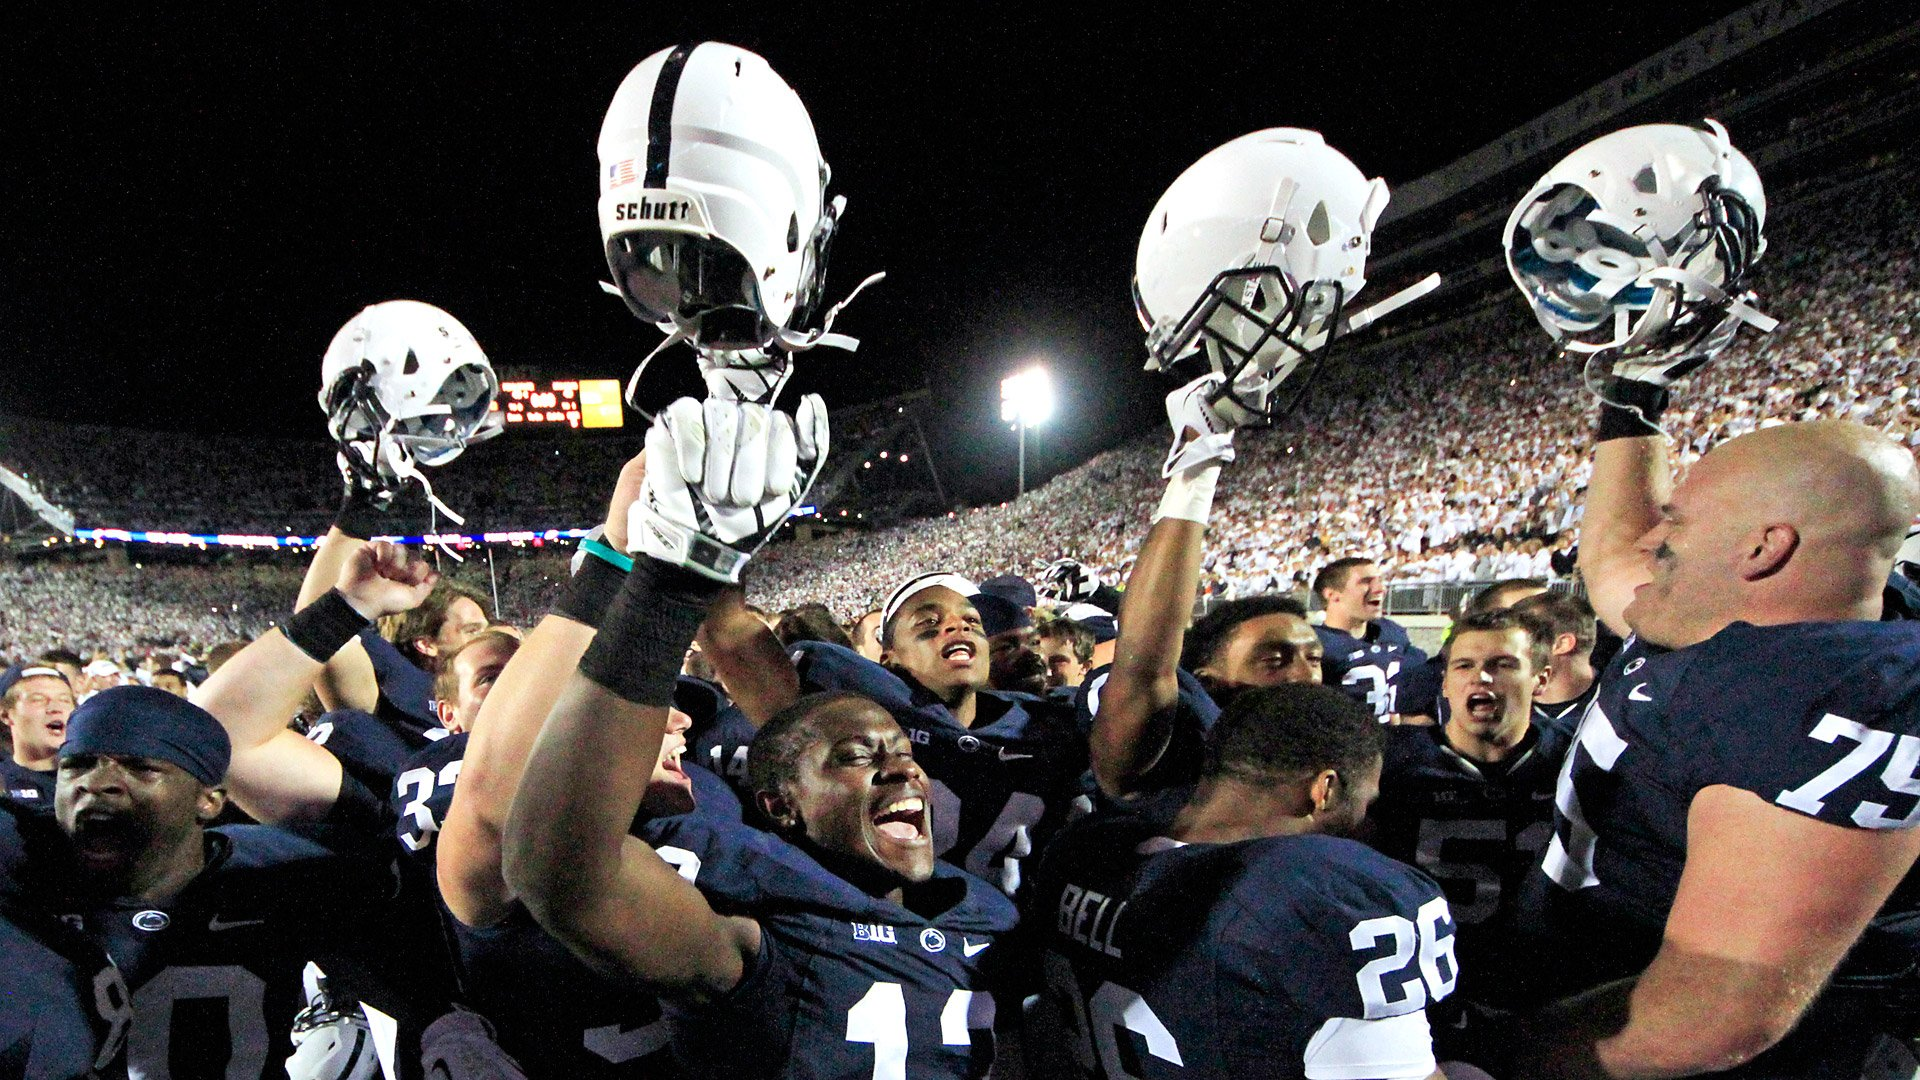 College Football Wallpapers Hd Download Free Penn State Wallpapers Pixelstalk Net